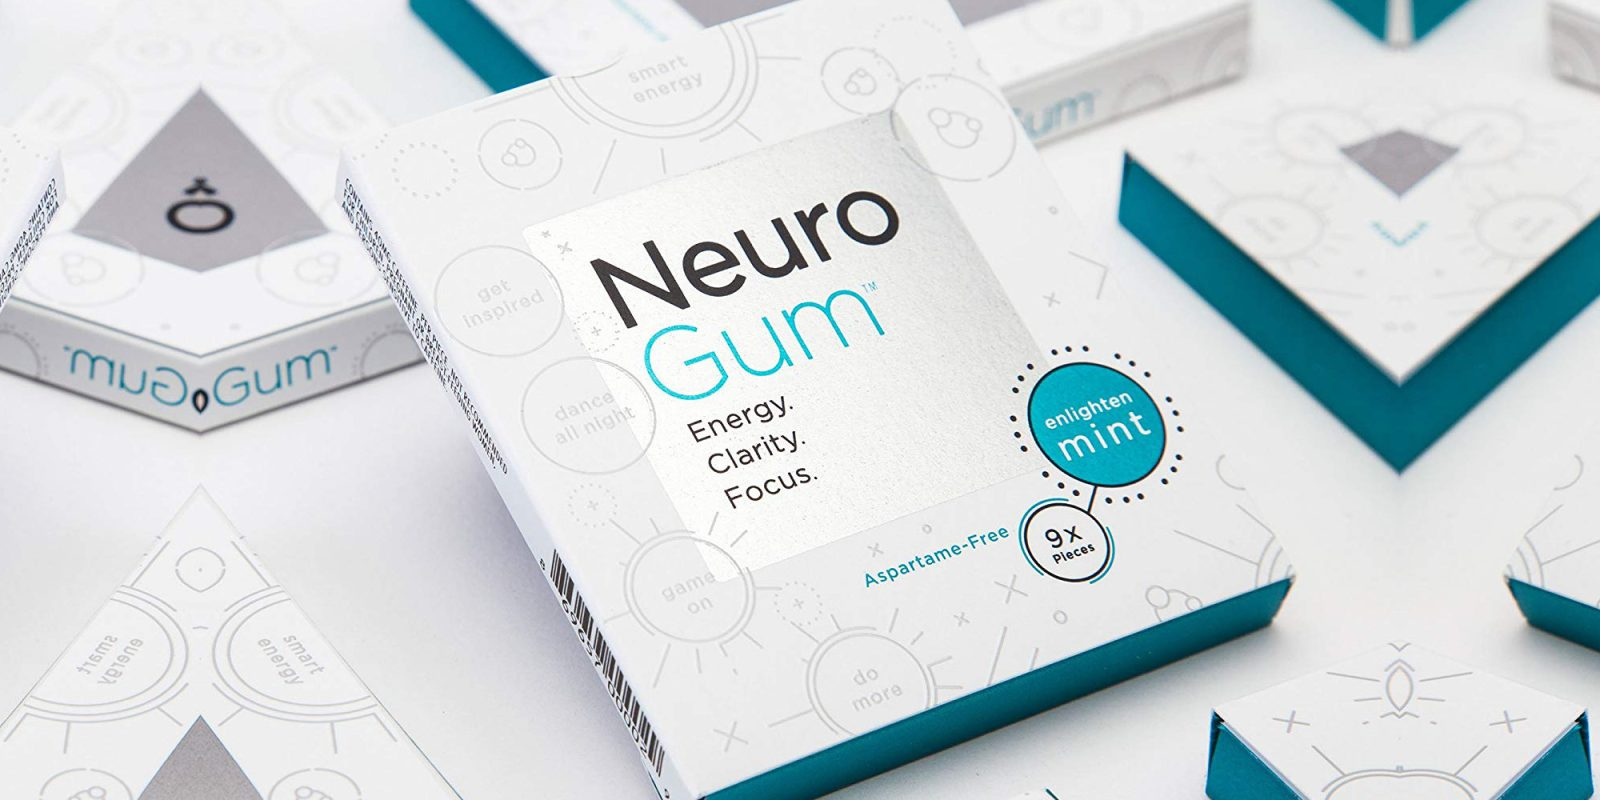 NeuroGum with caffeine and B12 keeps you sharp all day: 12-pack $30 (25% off)